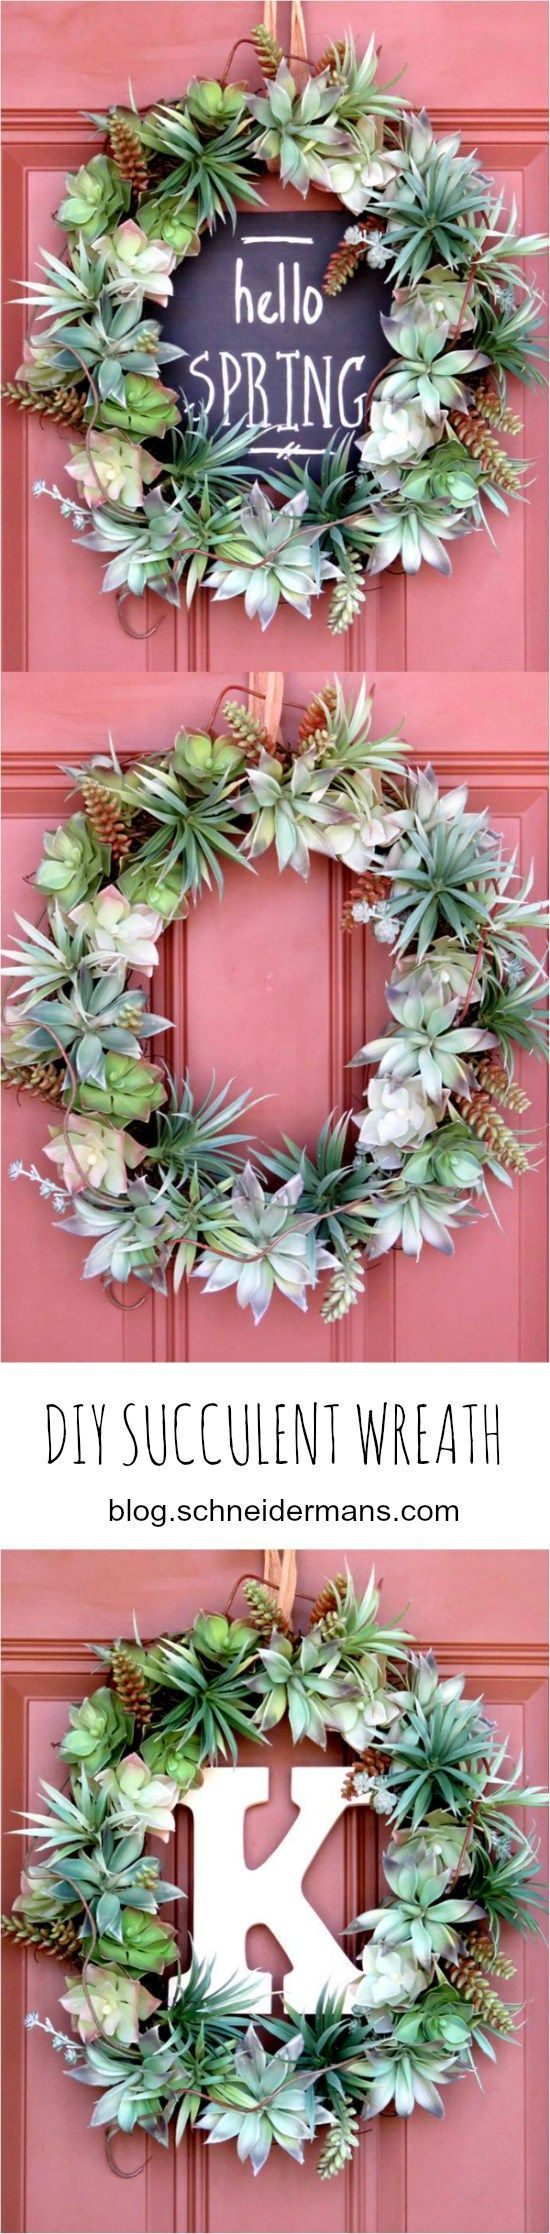 Spring Door Wreath Ideas Part - 27: Spring Door Decor Inspiration + A DIY Wreath Using Faux Succulents (3 Ways)  Via